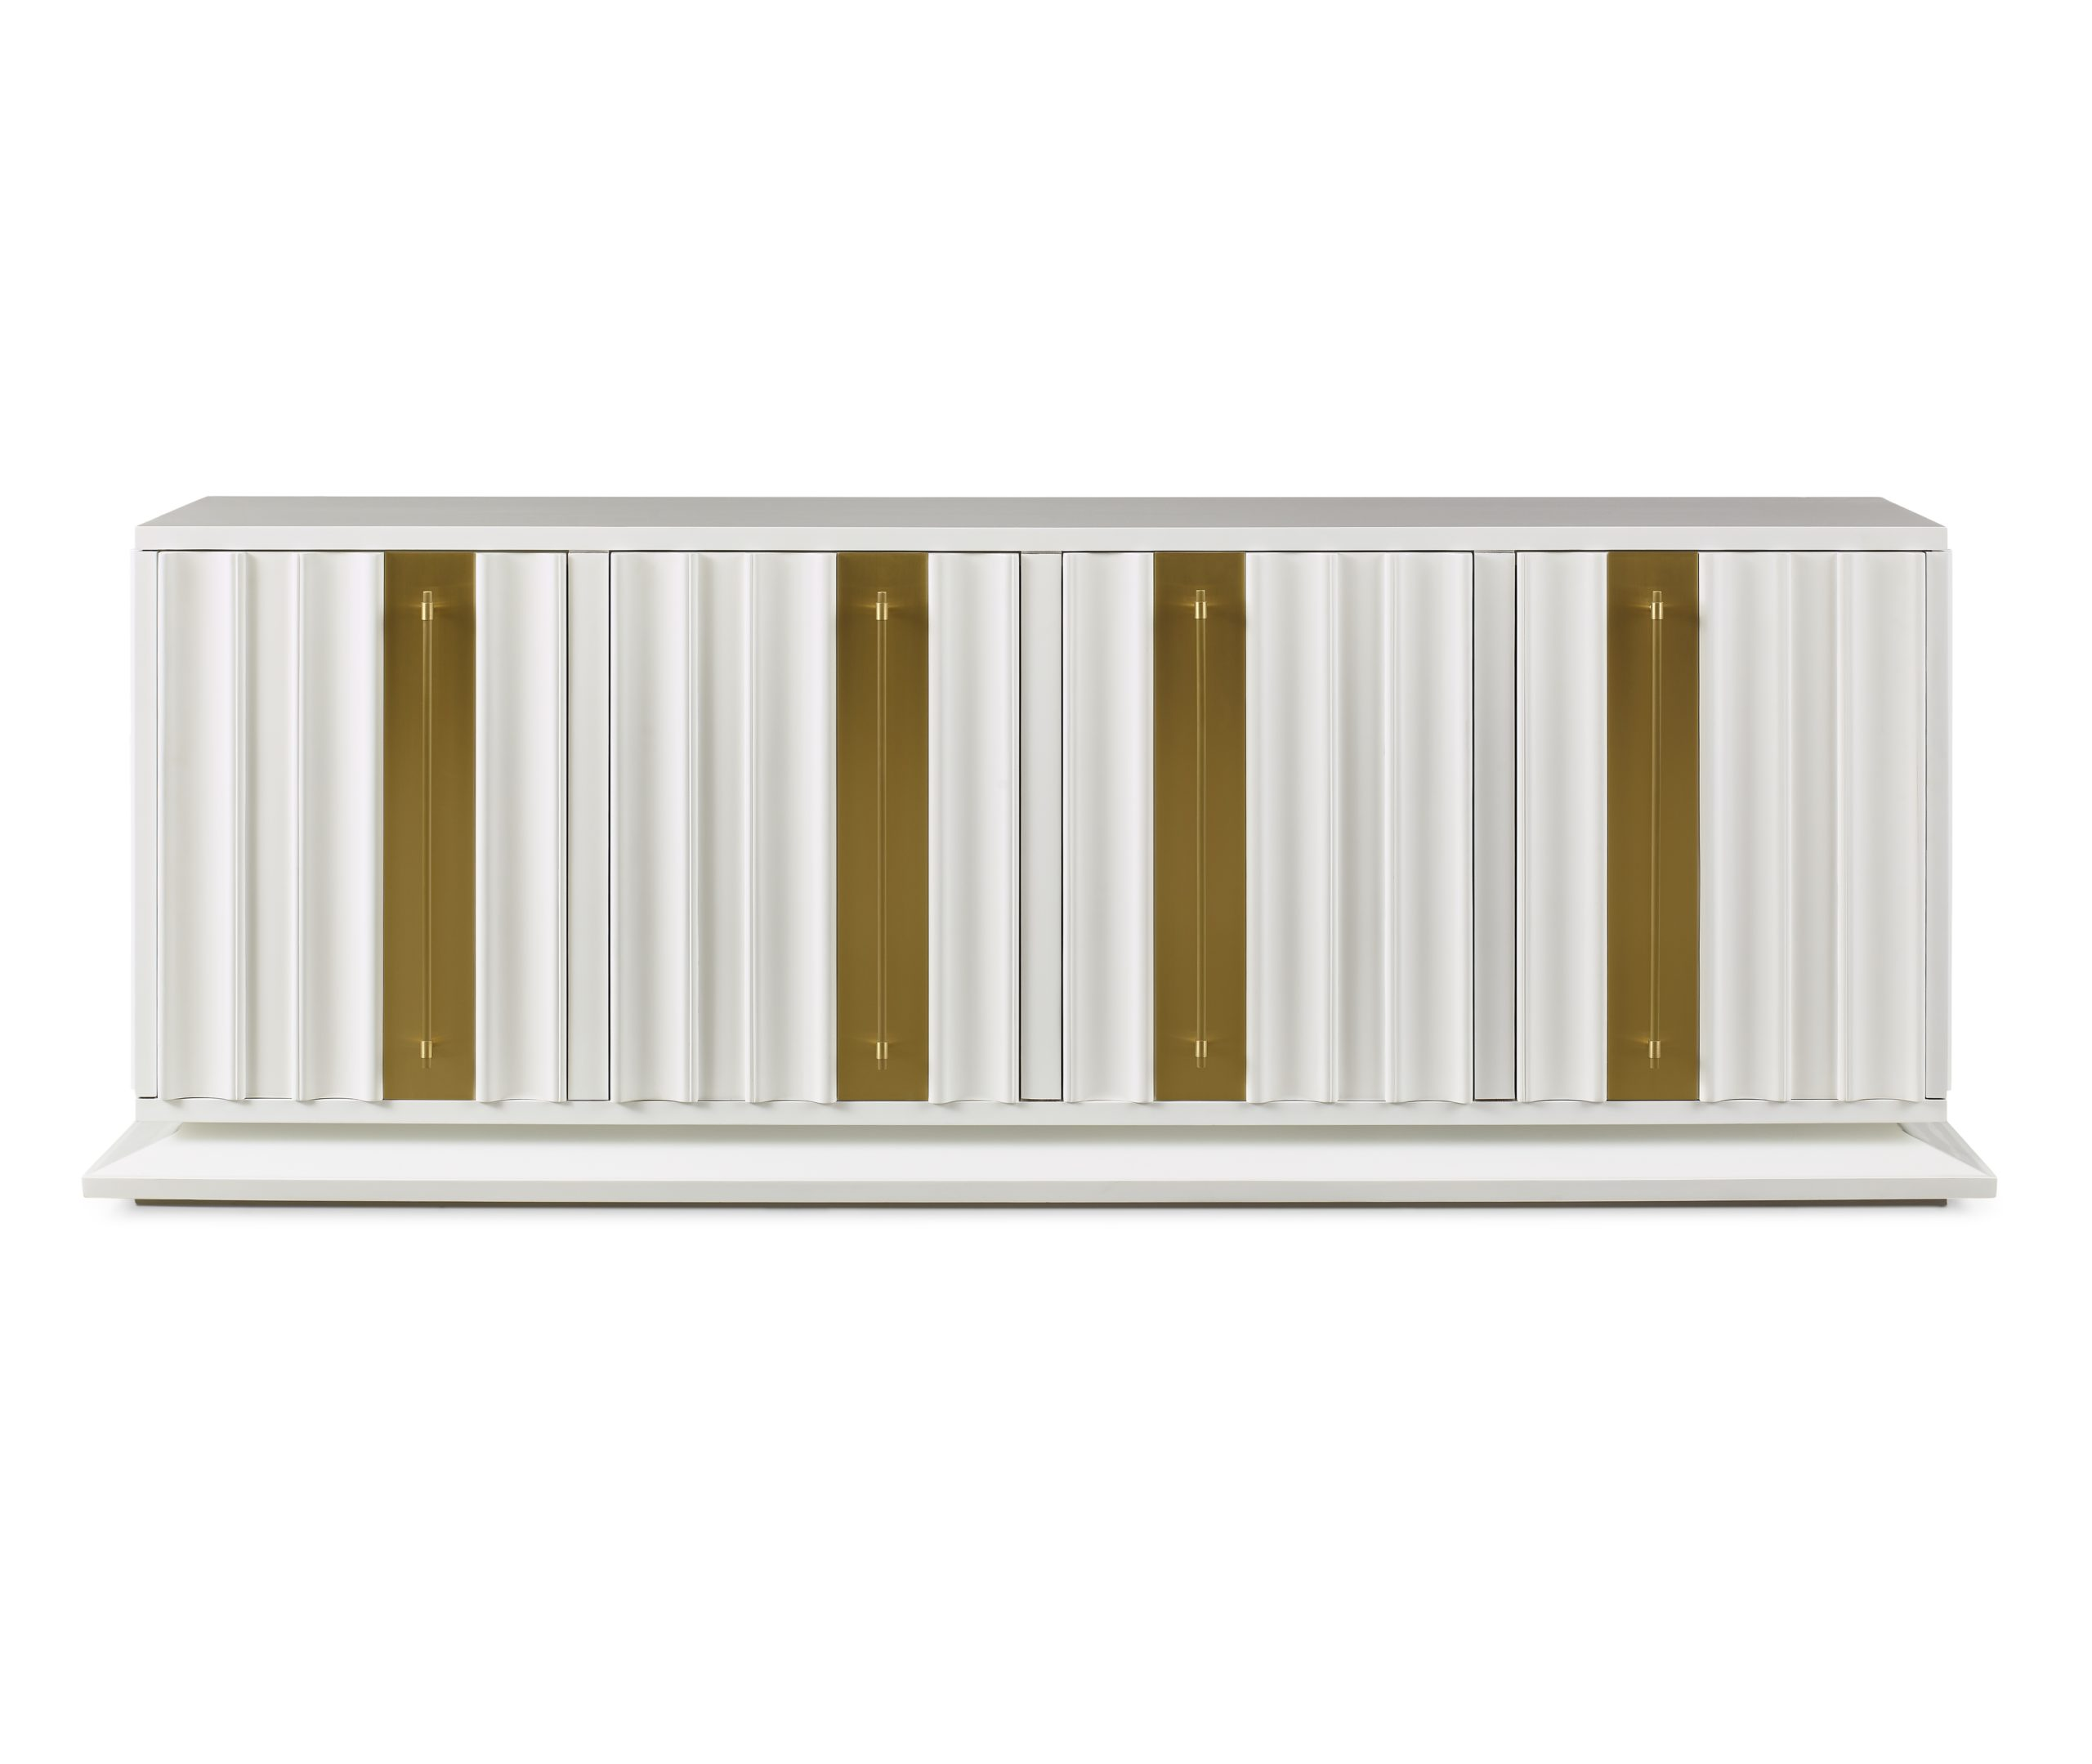 Baker_products_WNWN_cascade_credenza_BAA3283_FRONT-scaled-1